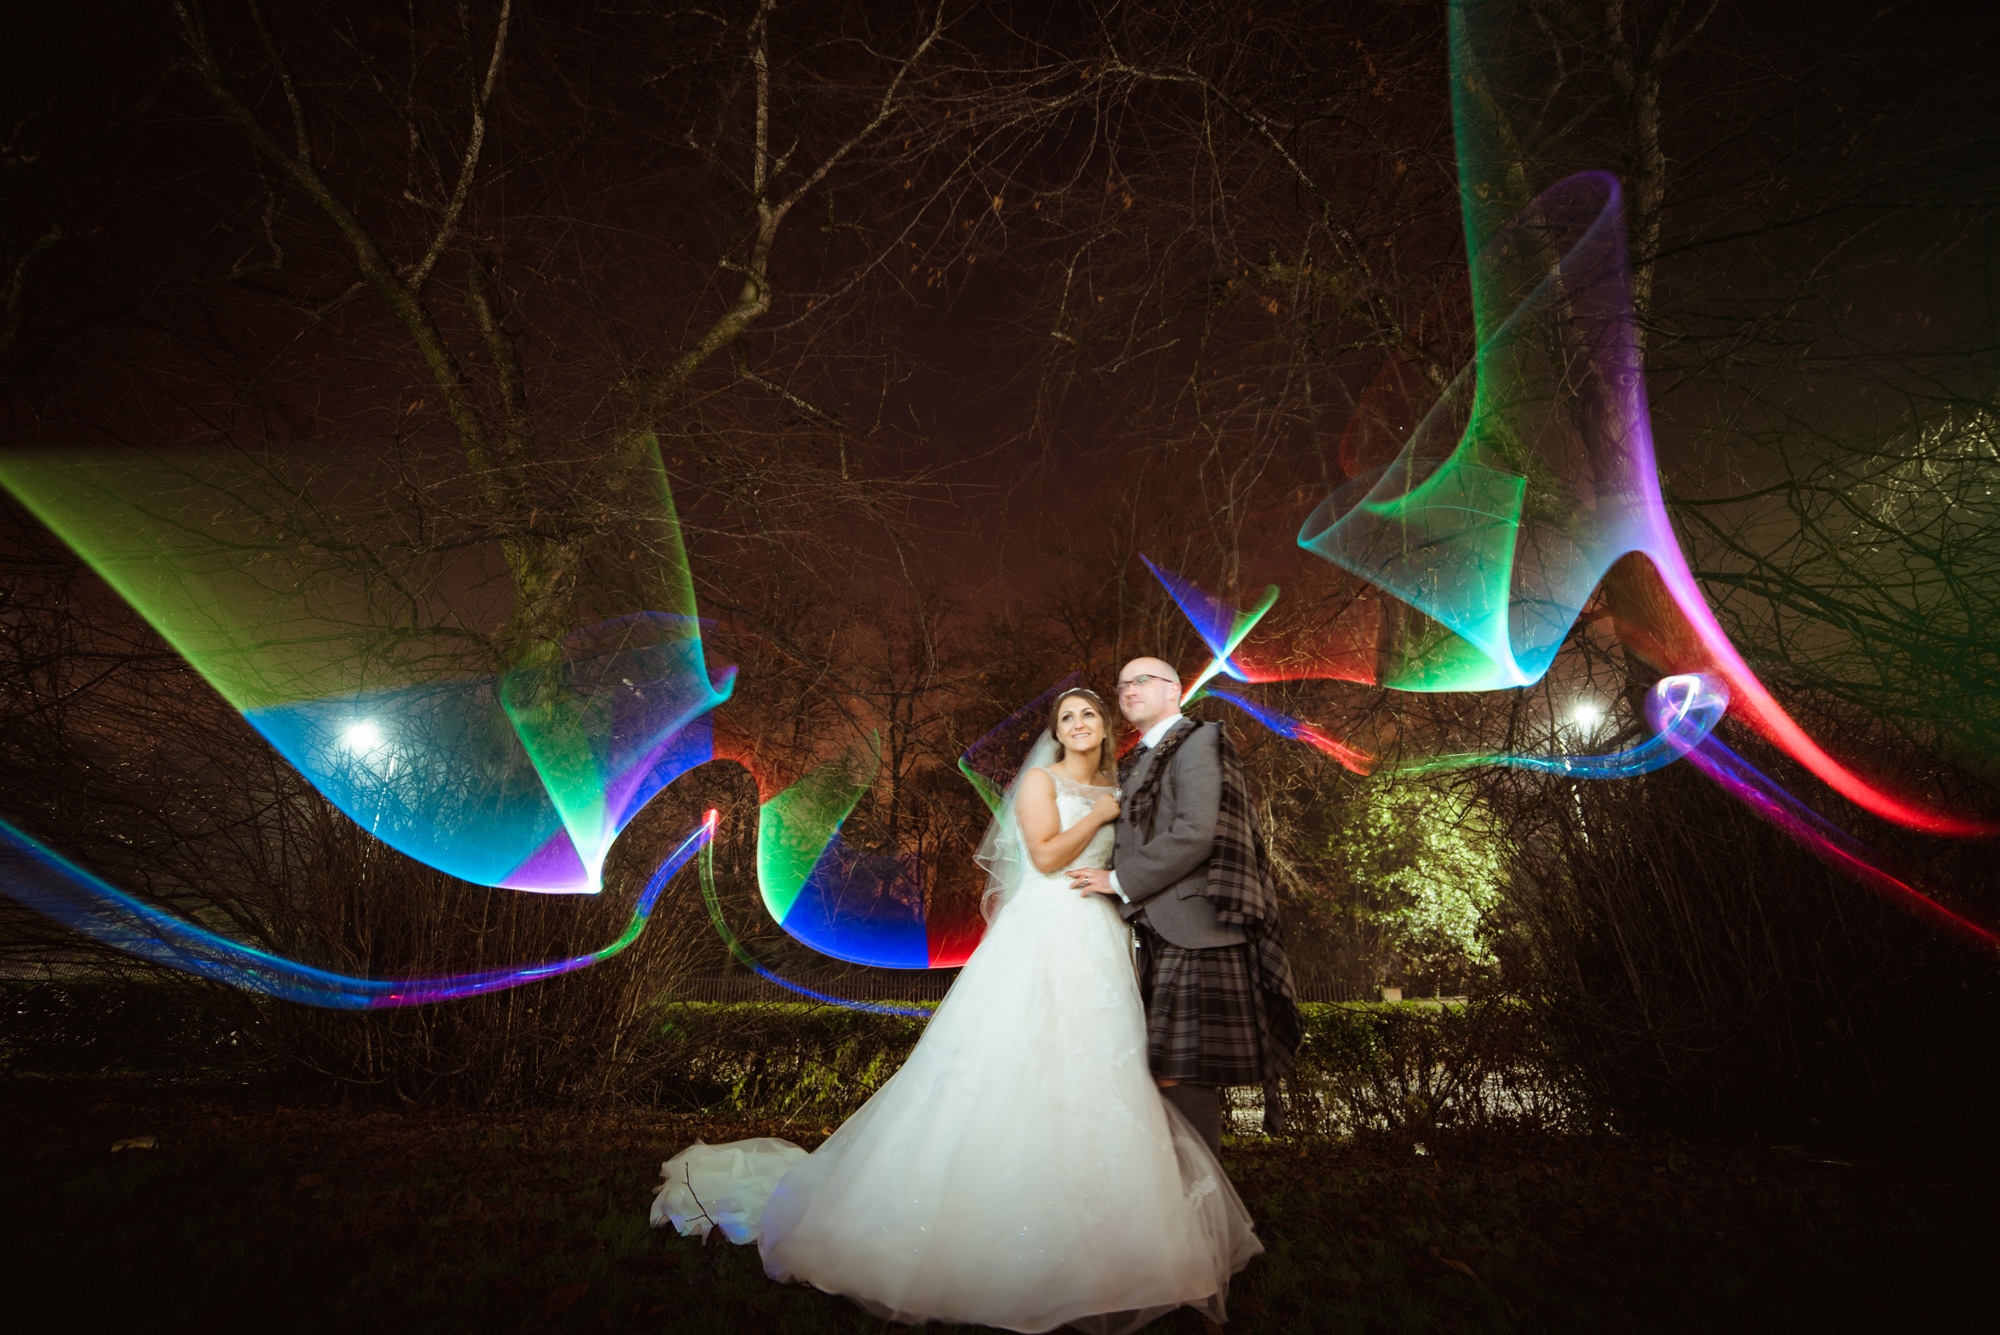 creative-wedding-photographer-glasgow.jpg